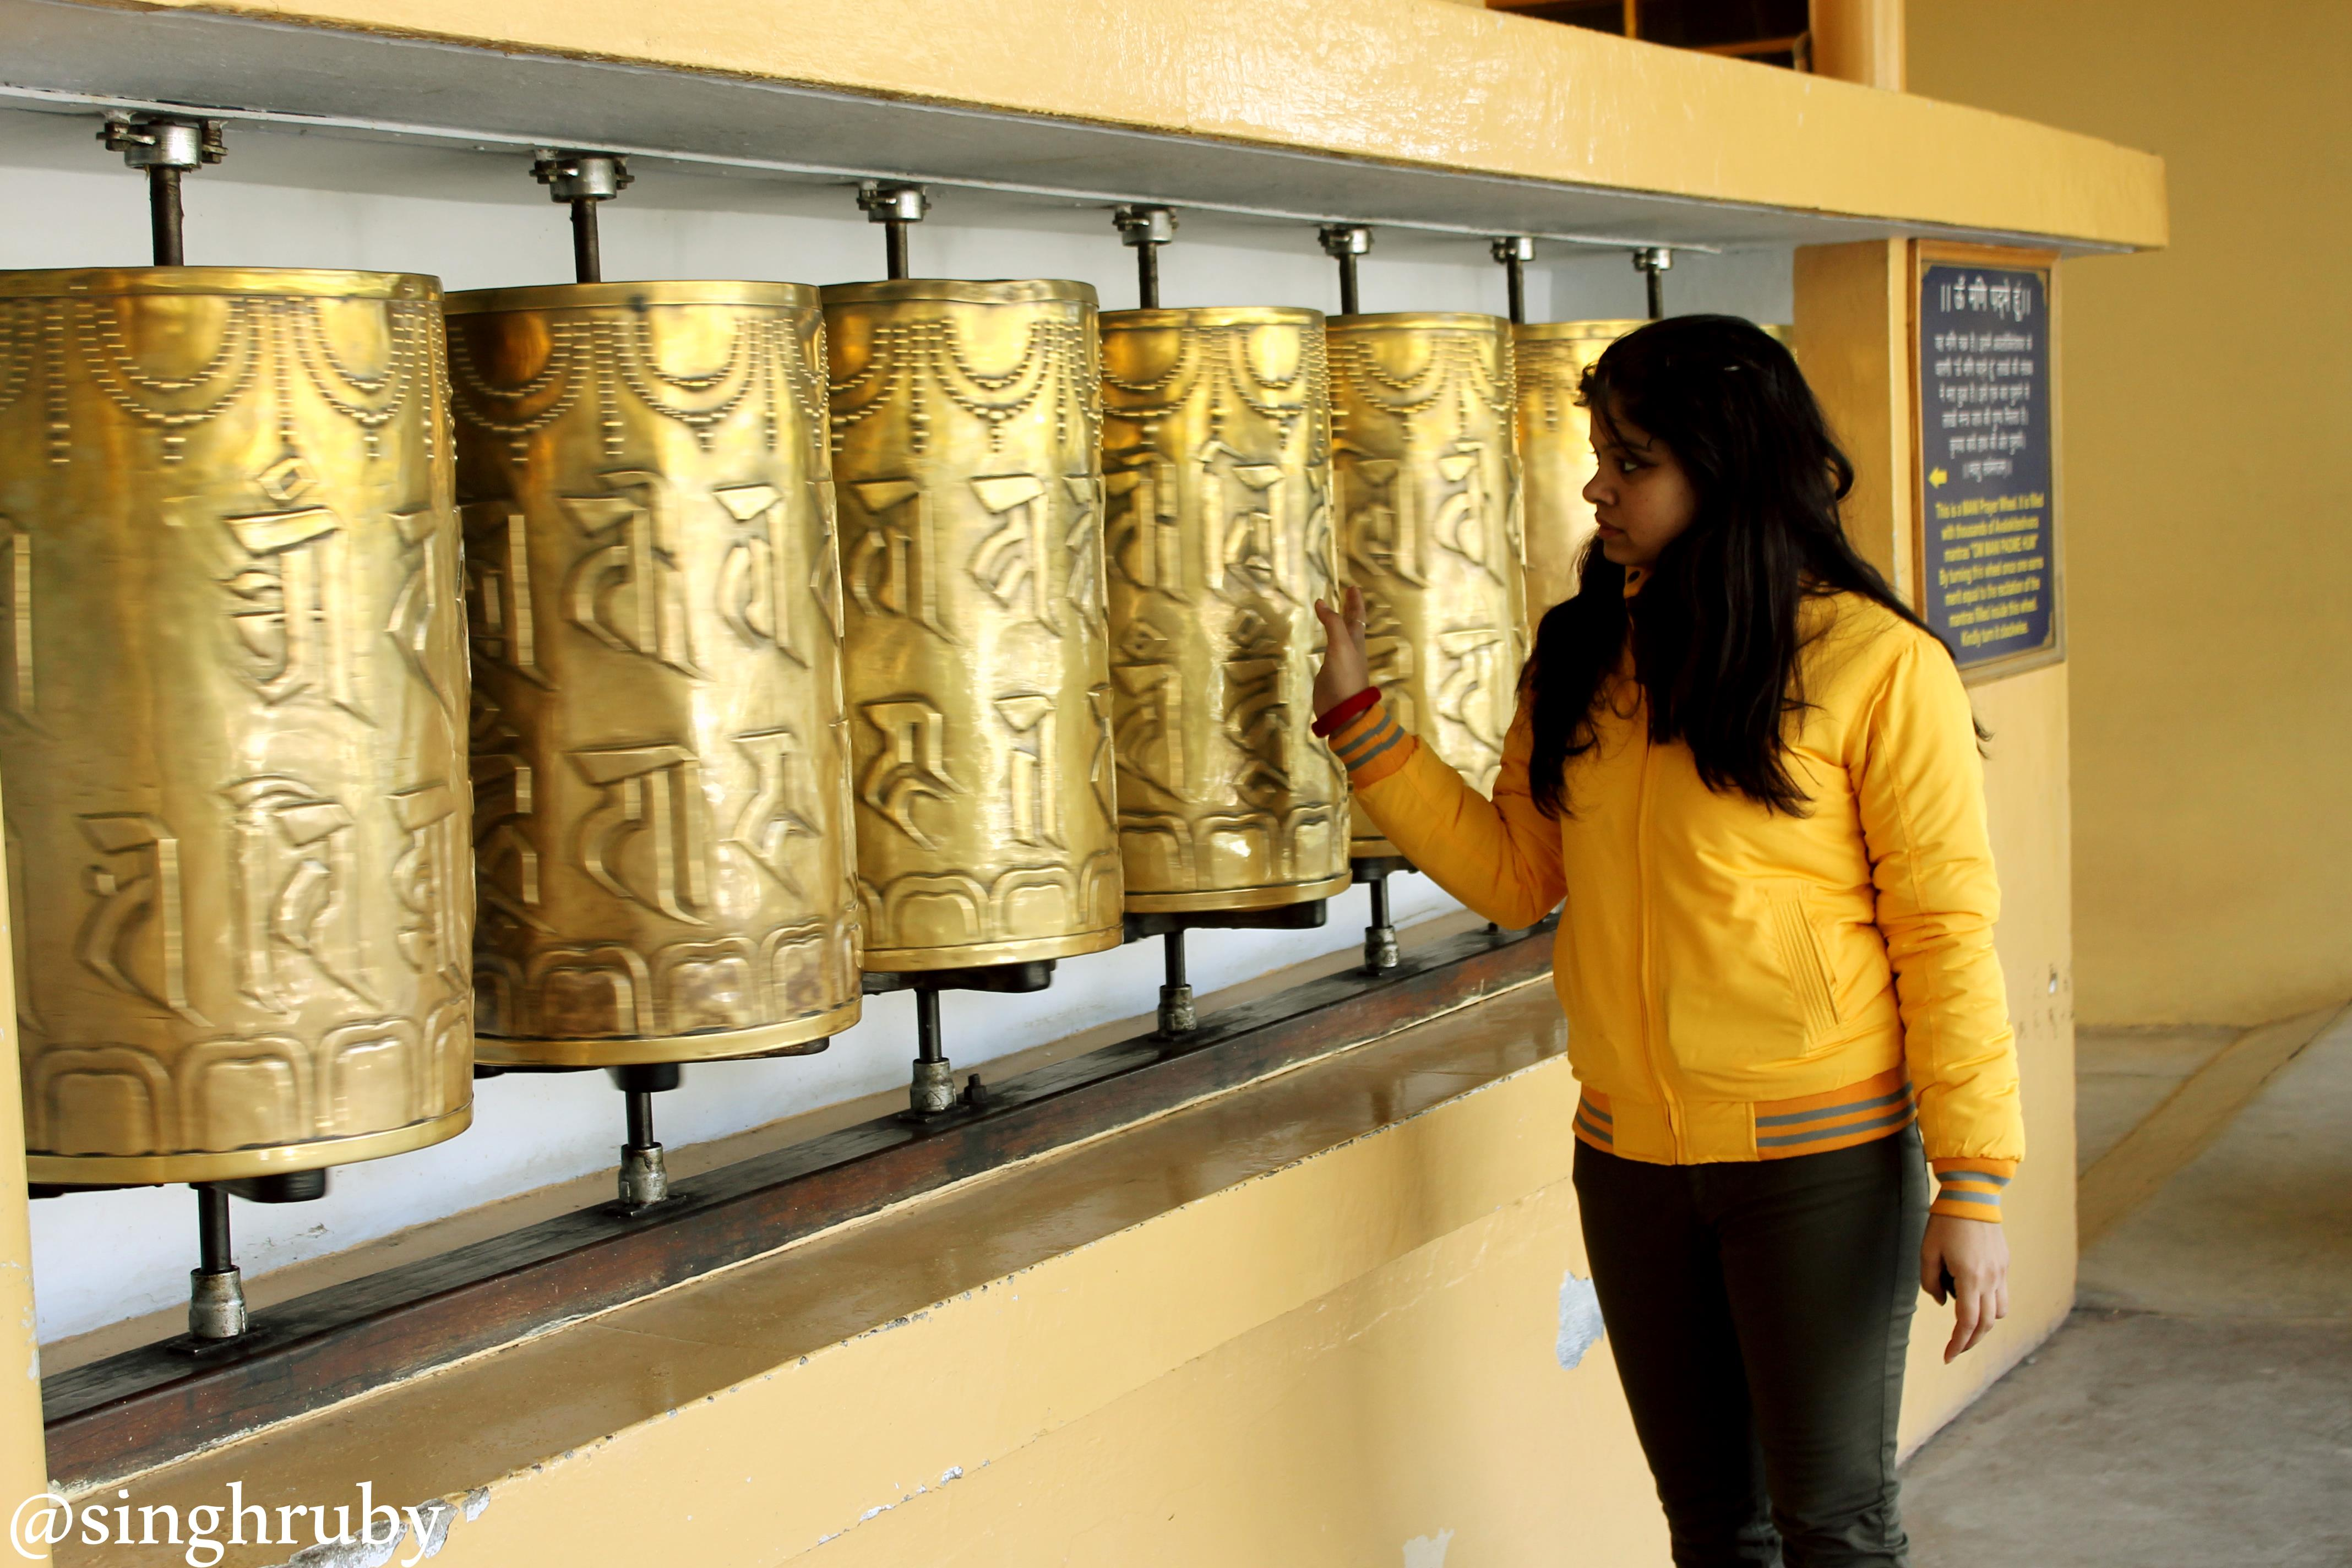 Prayer wheels in the temple